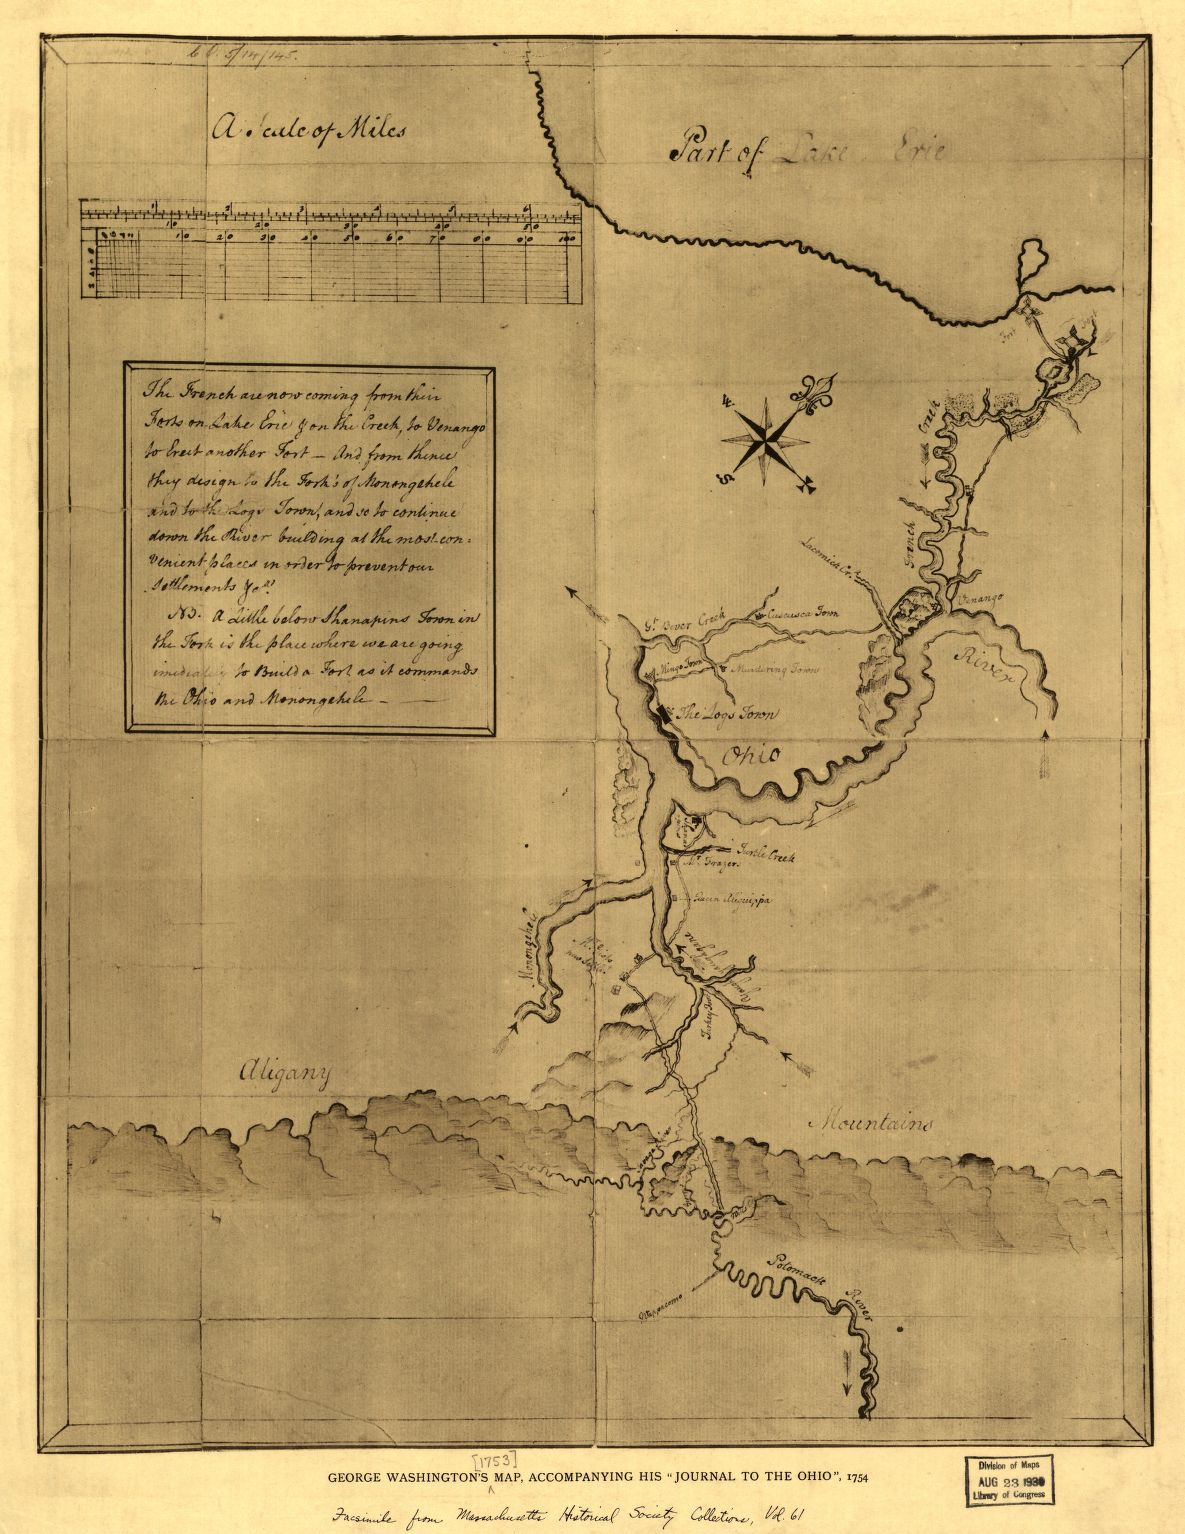 Washington's hand drawn map of the Ohio Valley - Courtesy Library of Congress